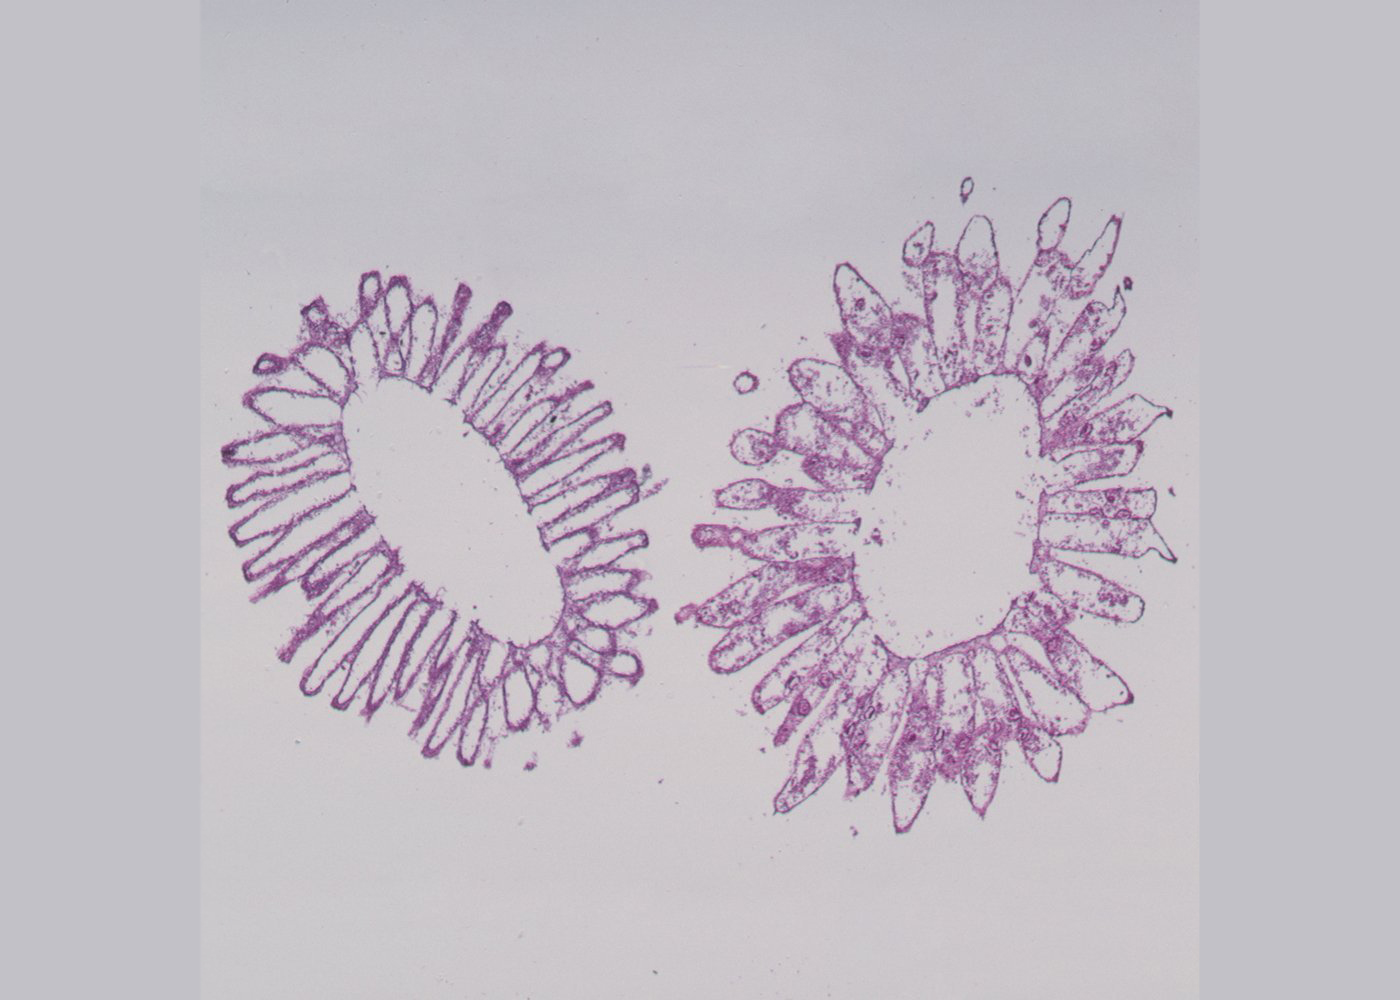 Choanocyte cell structures